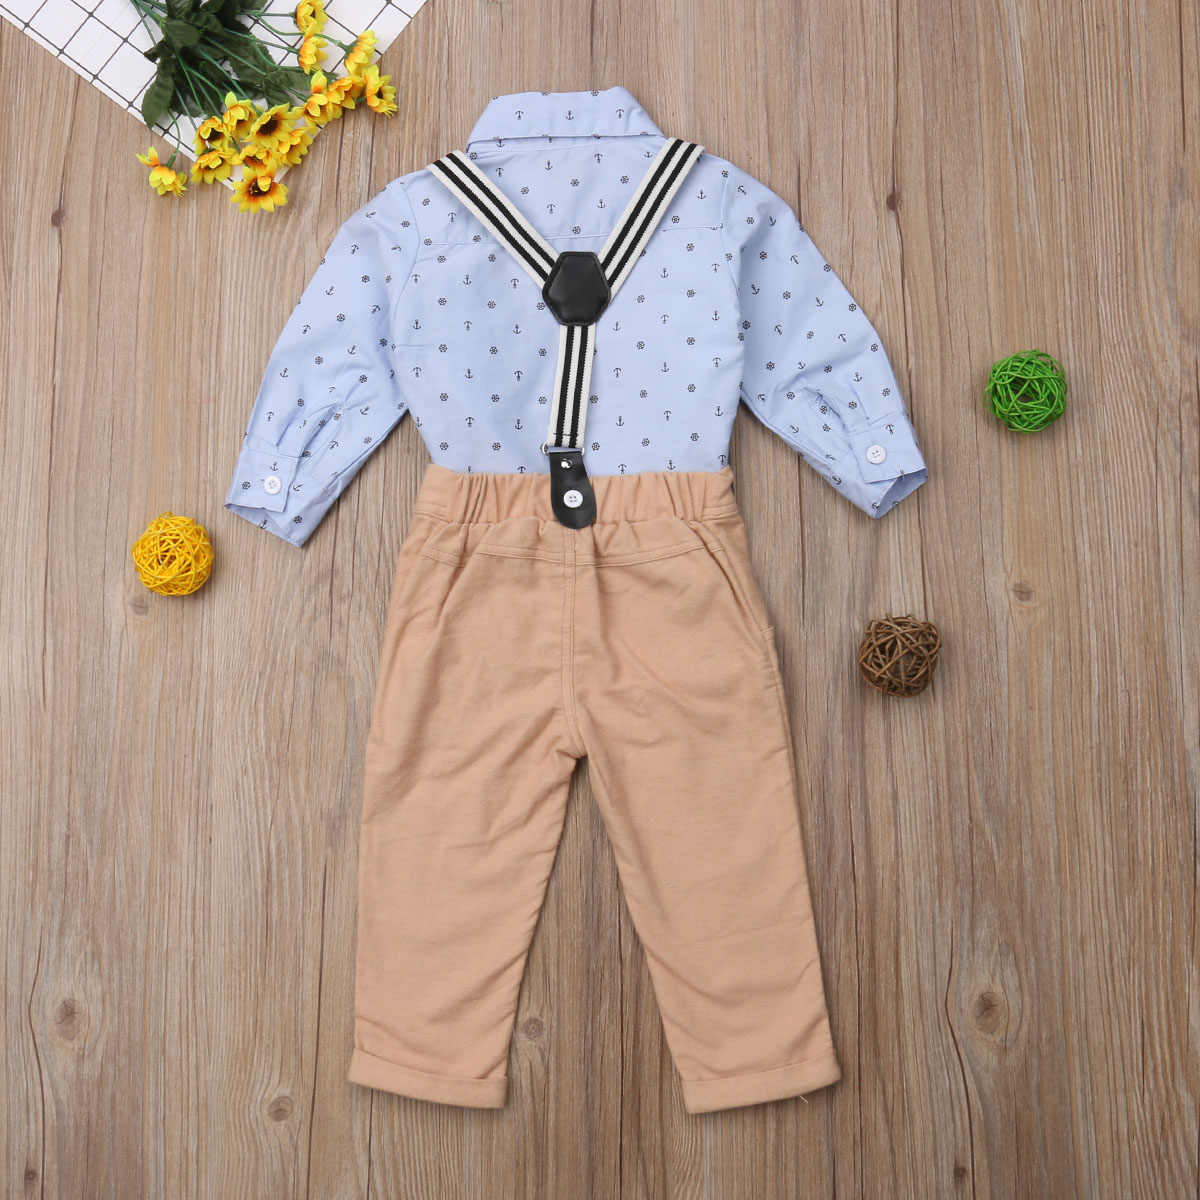 5f4c2cad2 ... Kid Boy Bodysuit Bow Tie Long Sleeve Bib Long Pants 2pcs Wedding Formal  Outfit Baby Kid